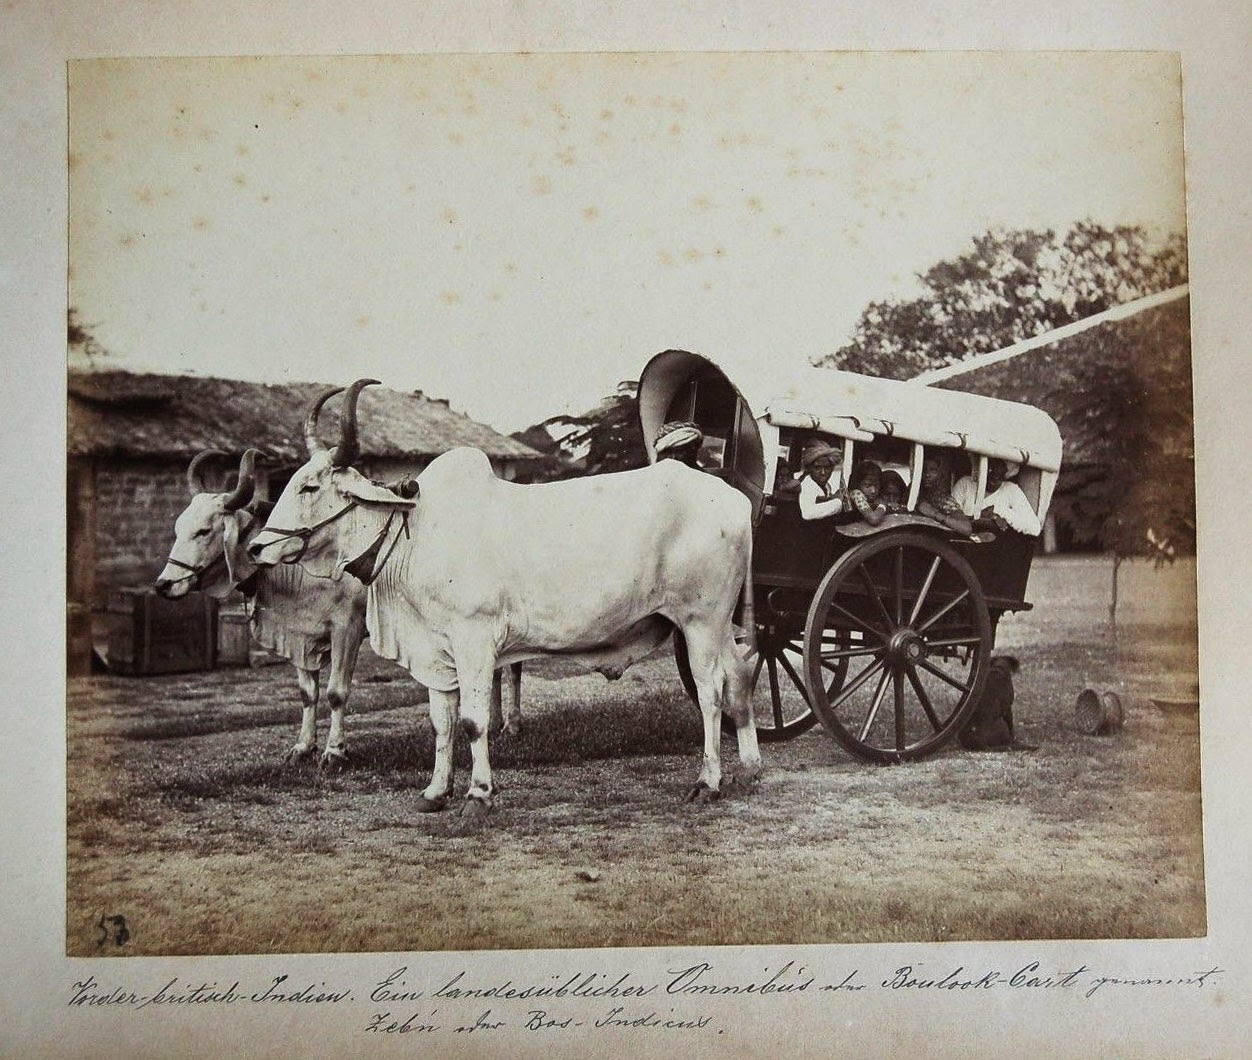 Indian Bullock Cart with Passengers